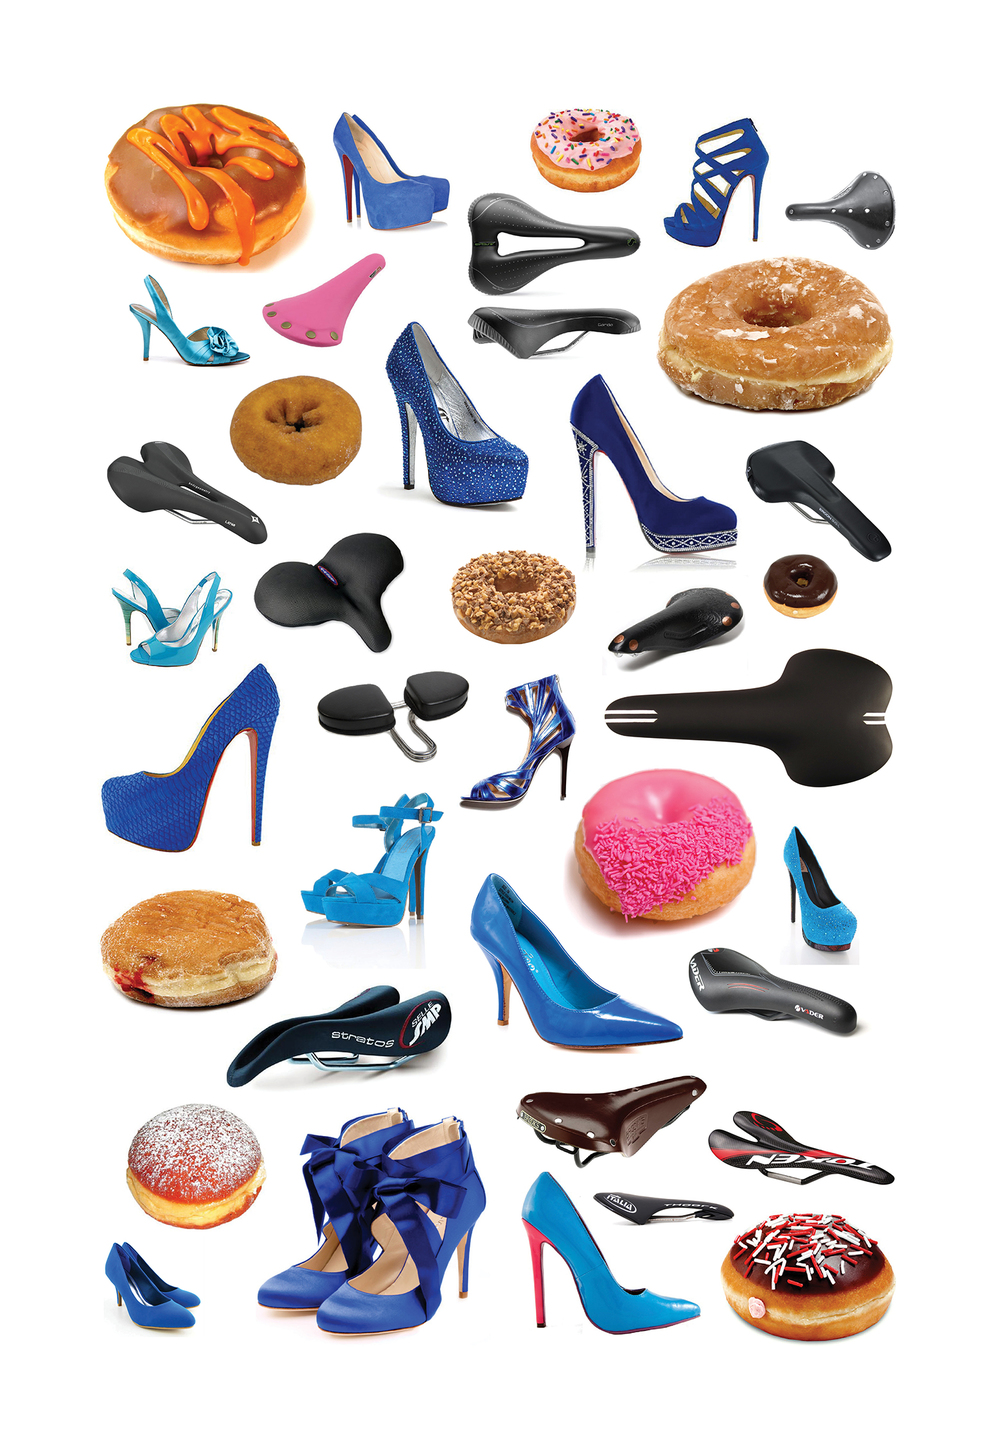 "Jeff Gibson Set of two untitled prints (Donuts, heels, seats), 2014 Archival inkjet print Ed. 1 of 3 Courtesy of the artist 39"" x 27"" each Retail Value: $3,000 Opening Bid: $2,000"